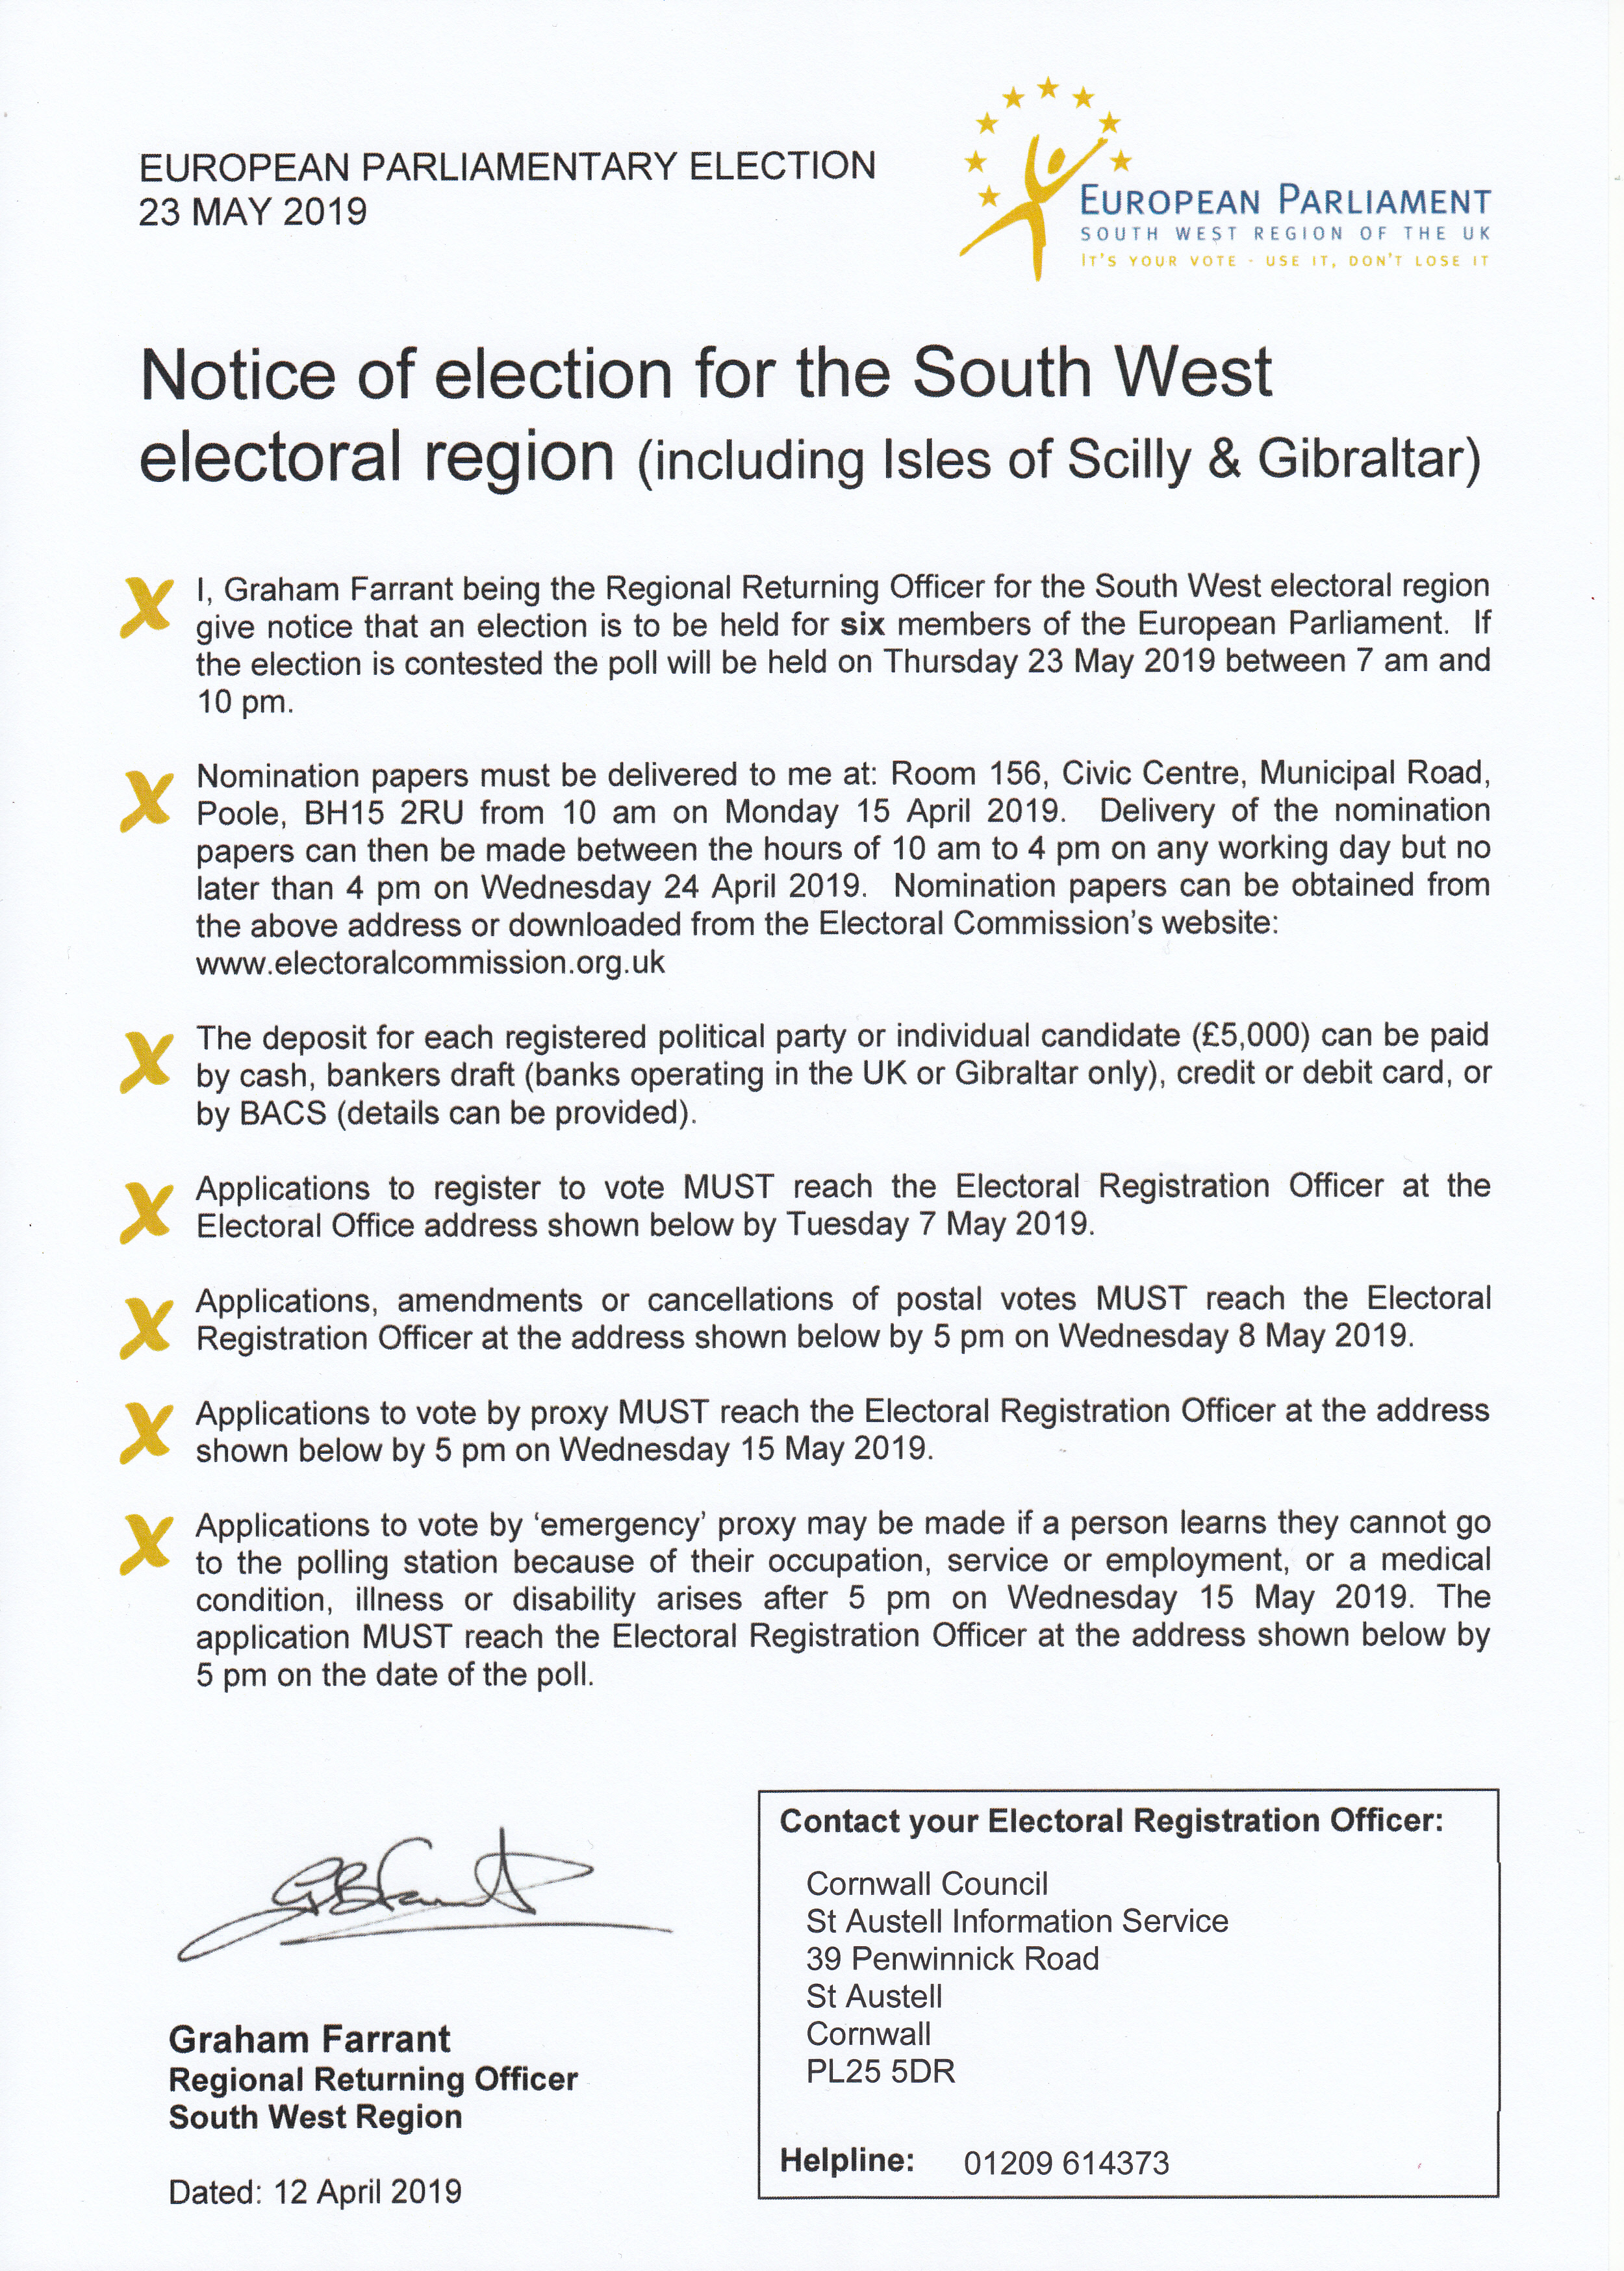 Notice of Election SW